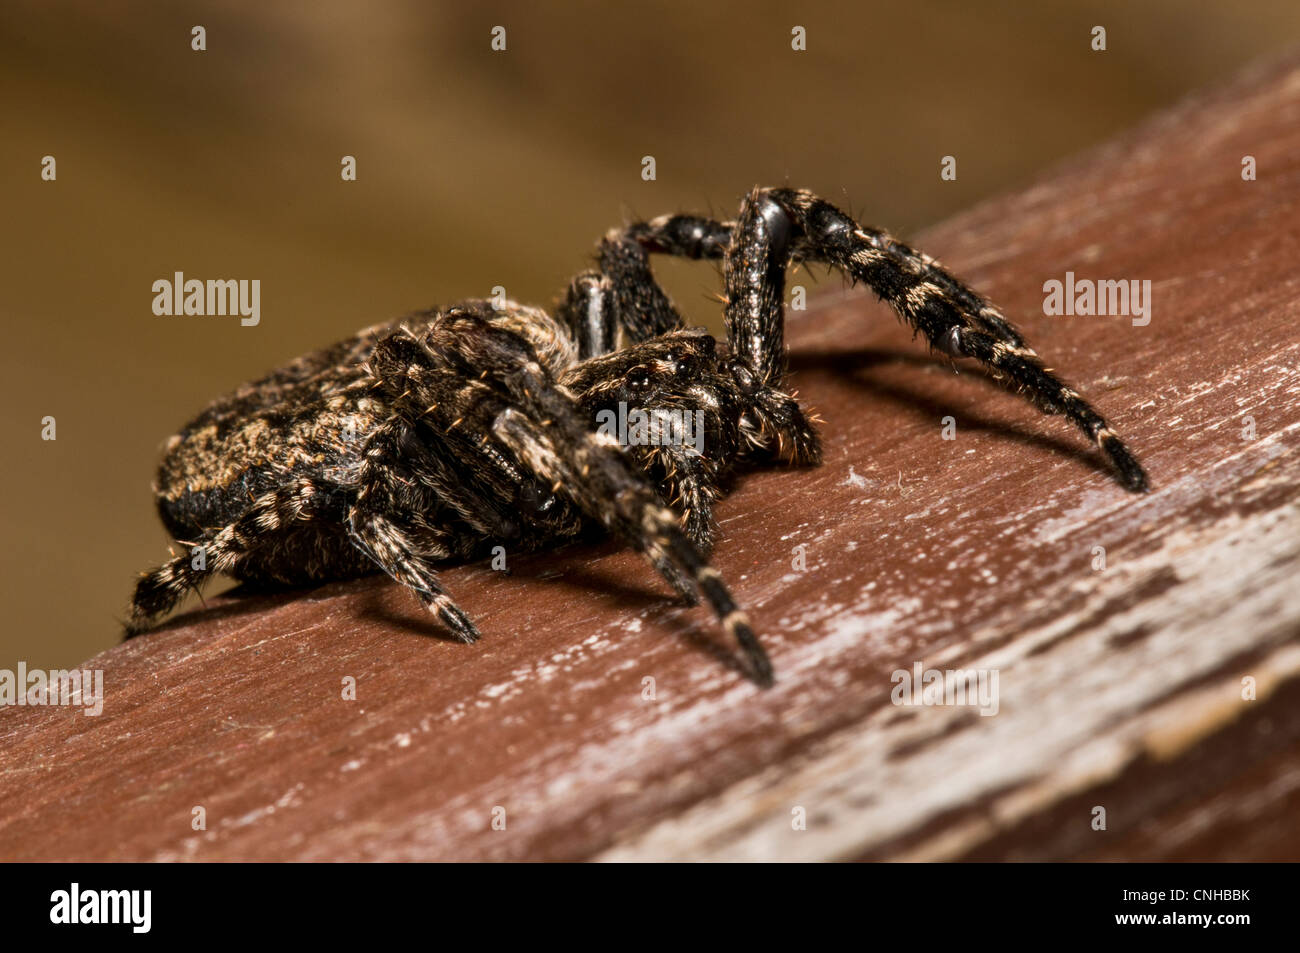 A female walnut orb weaver spider (Nuctenea umbratica) in a hide at RSPB Minsmere, Suffolk. April. - Stock Image